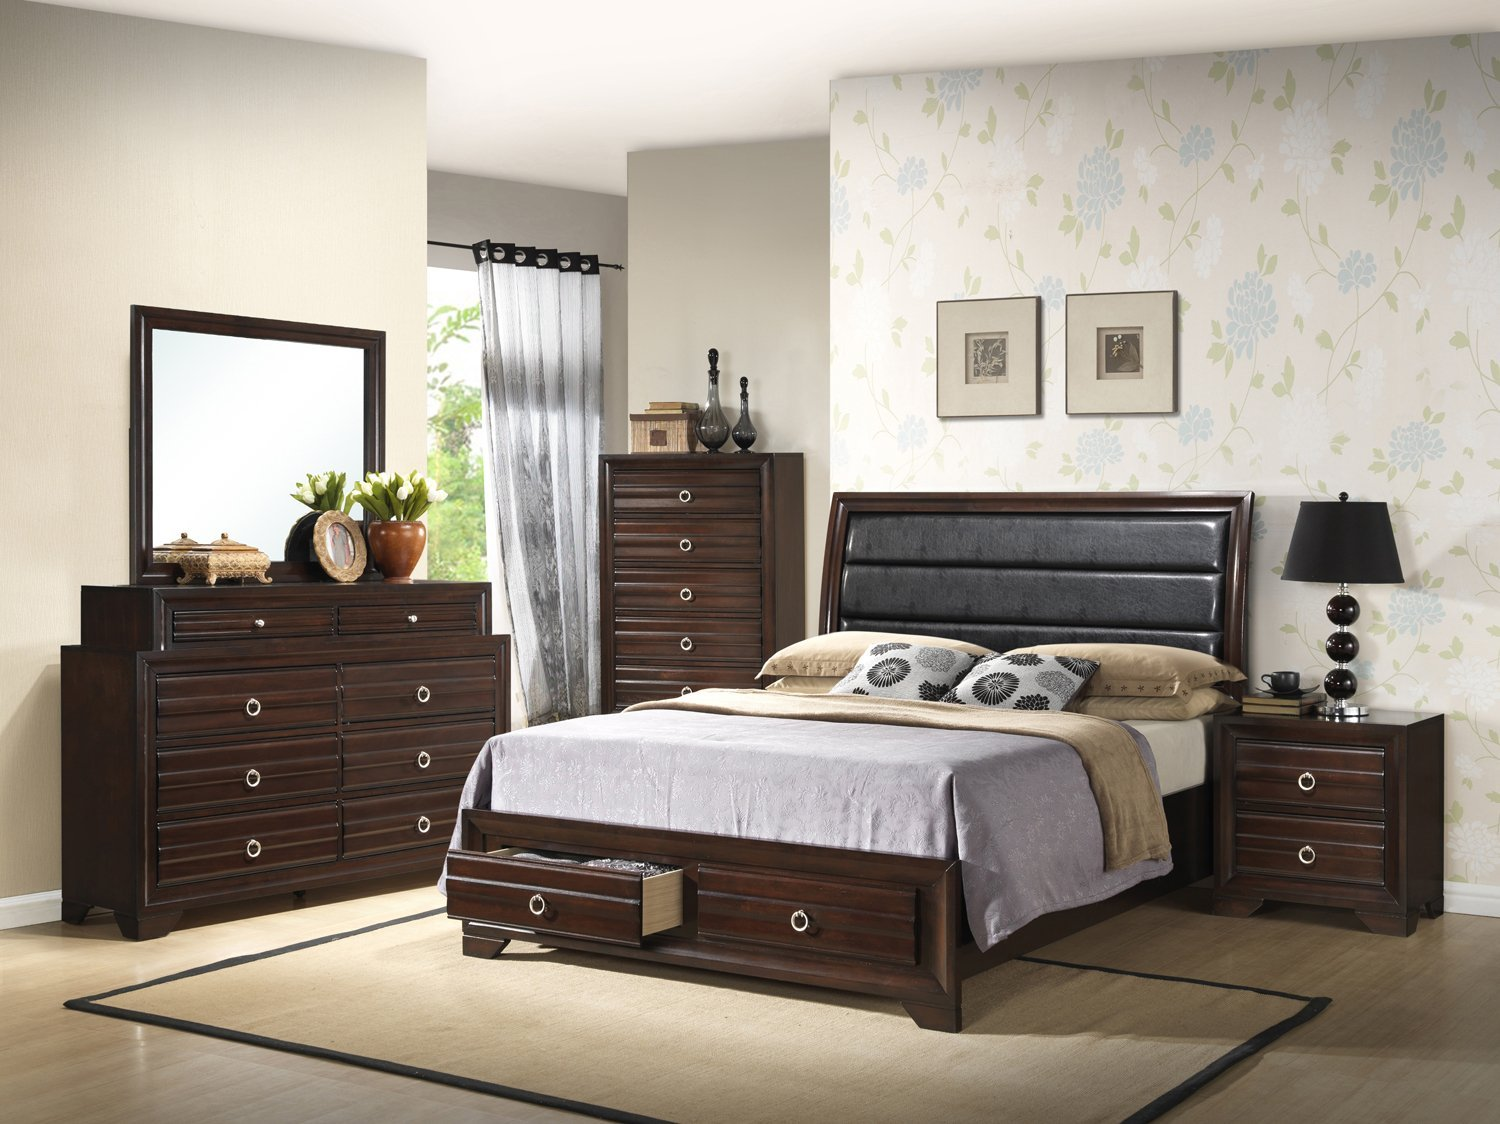 Home Source 50902063 Barcelona Collection Asian Hardwood Night Stand, 24.7 by 16.5 by 23.6-Inch, Espresso